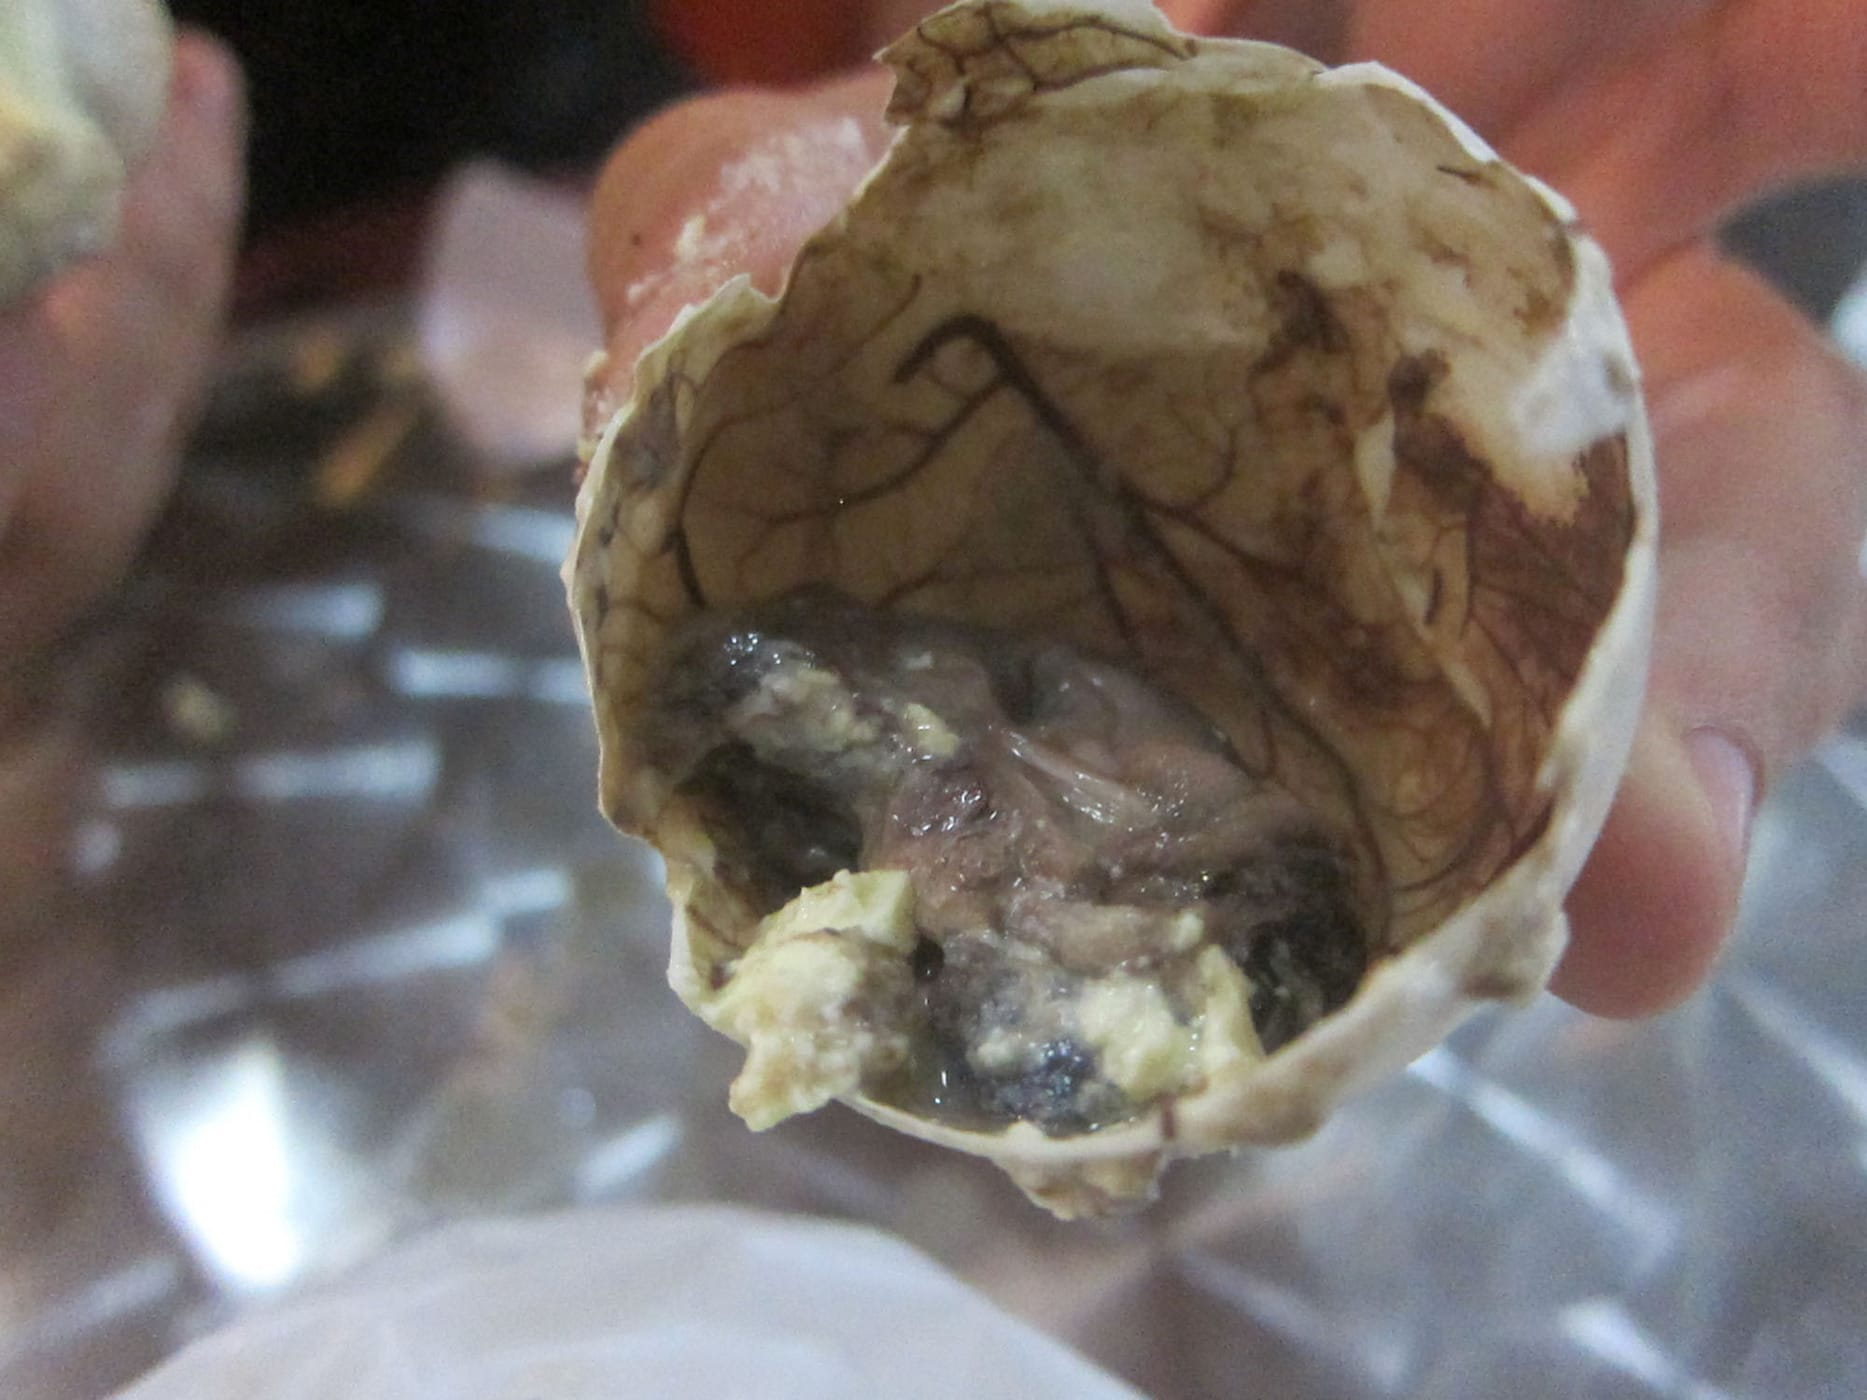 Eating Balut - fertilized duck embryo - in Manila, Philippines